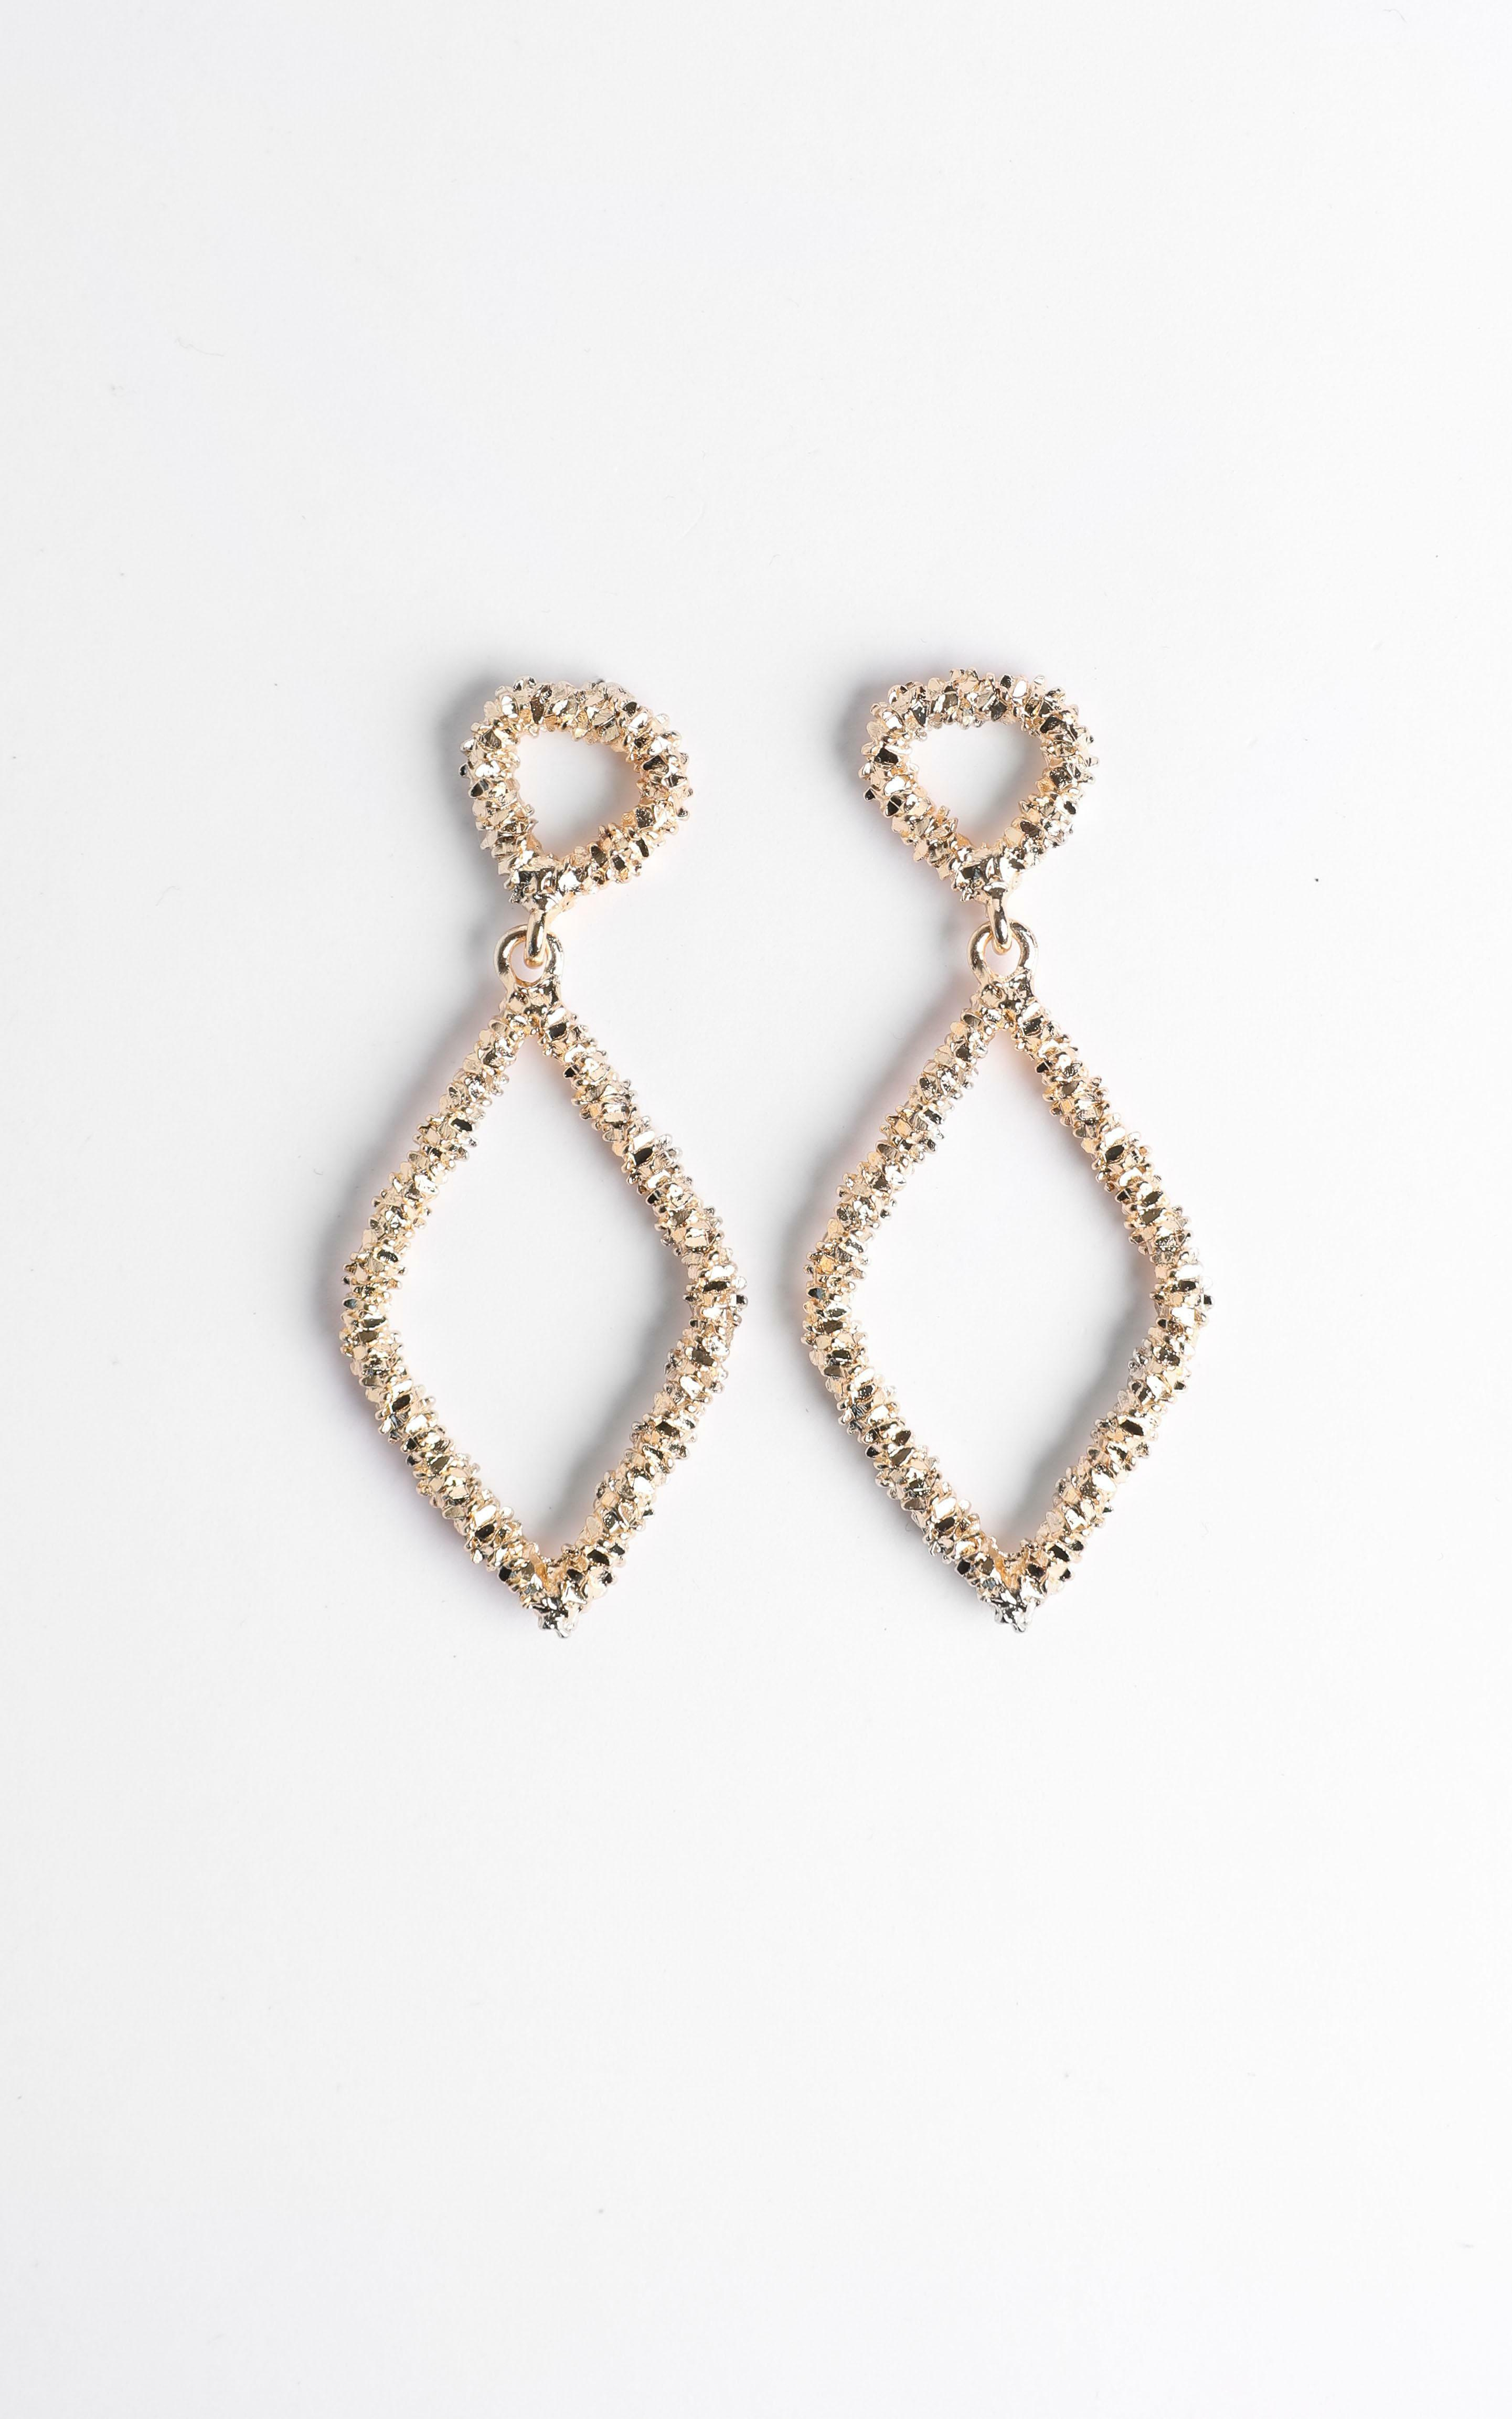 Disco Nights Sparkle Earrings in Gold, , hi-res image number null